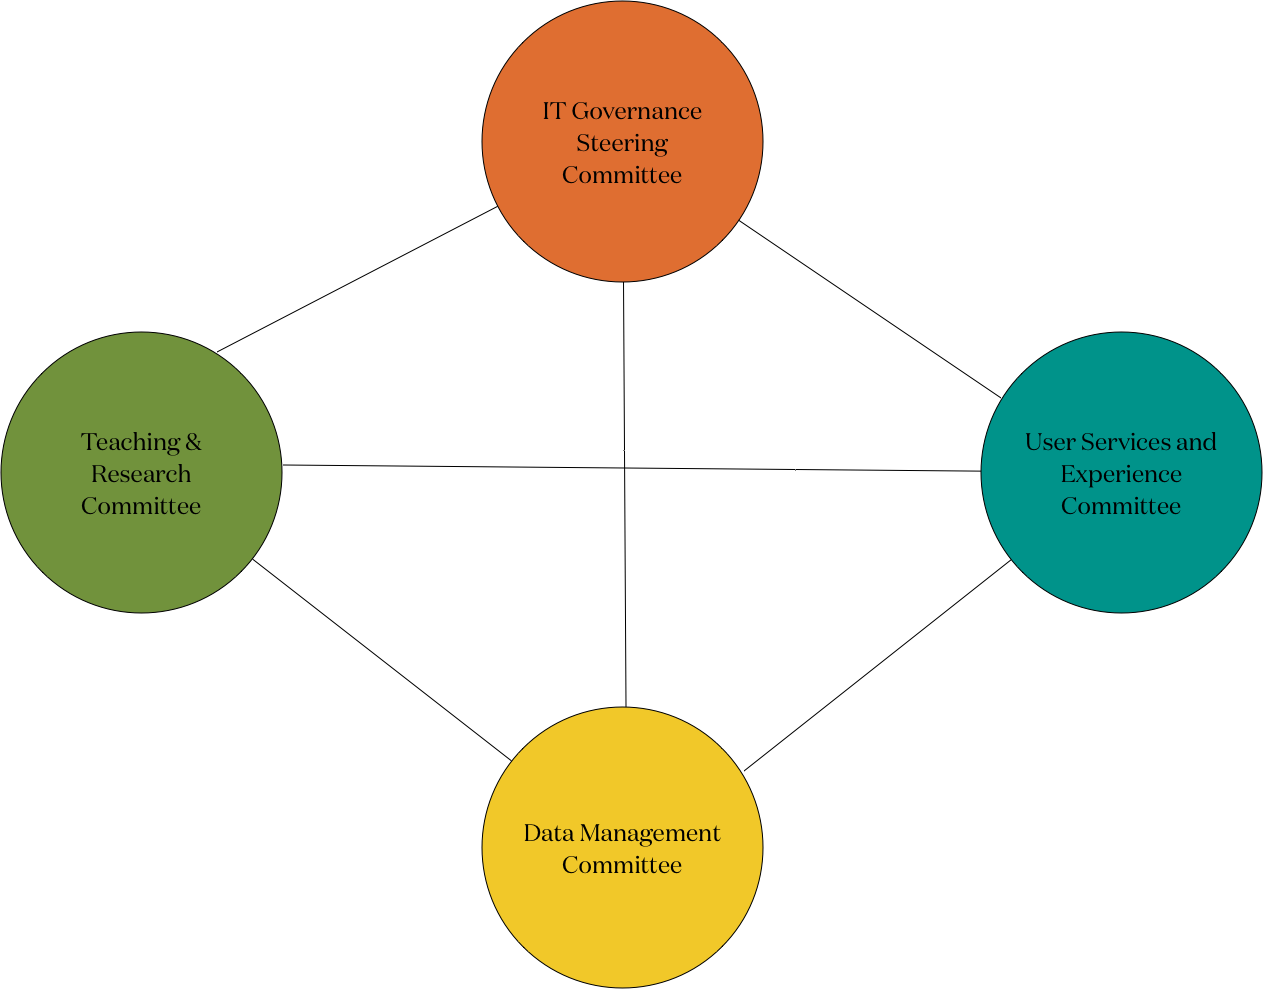 IT Governance Organizational Chart: IT Governance Steering Committee, Teaching & Research Committee, User Services & Experience Committee, Data Management Committee